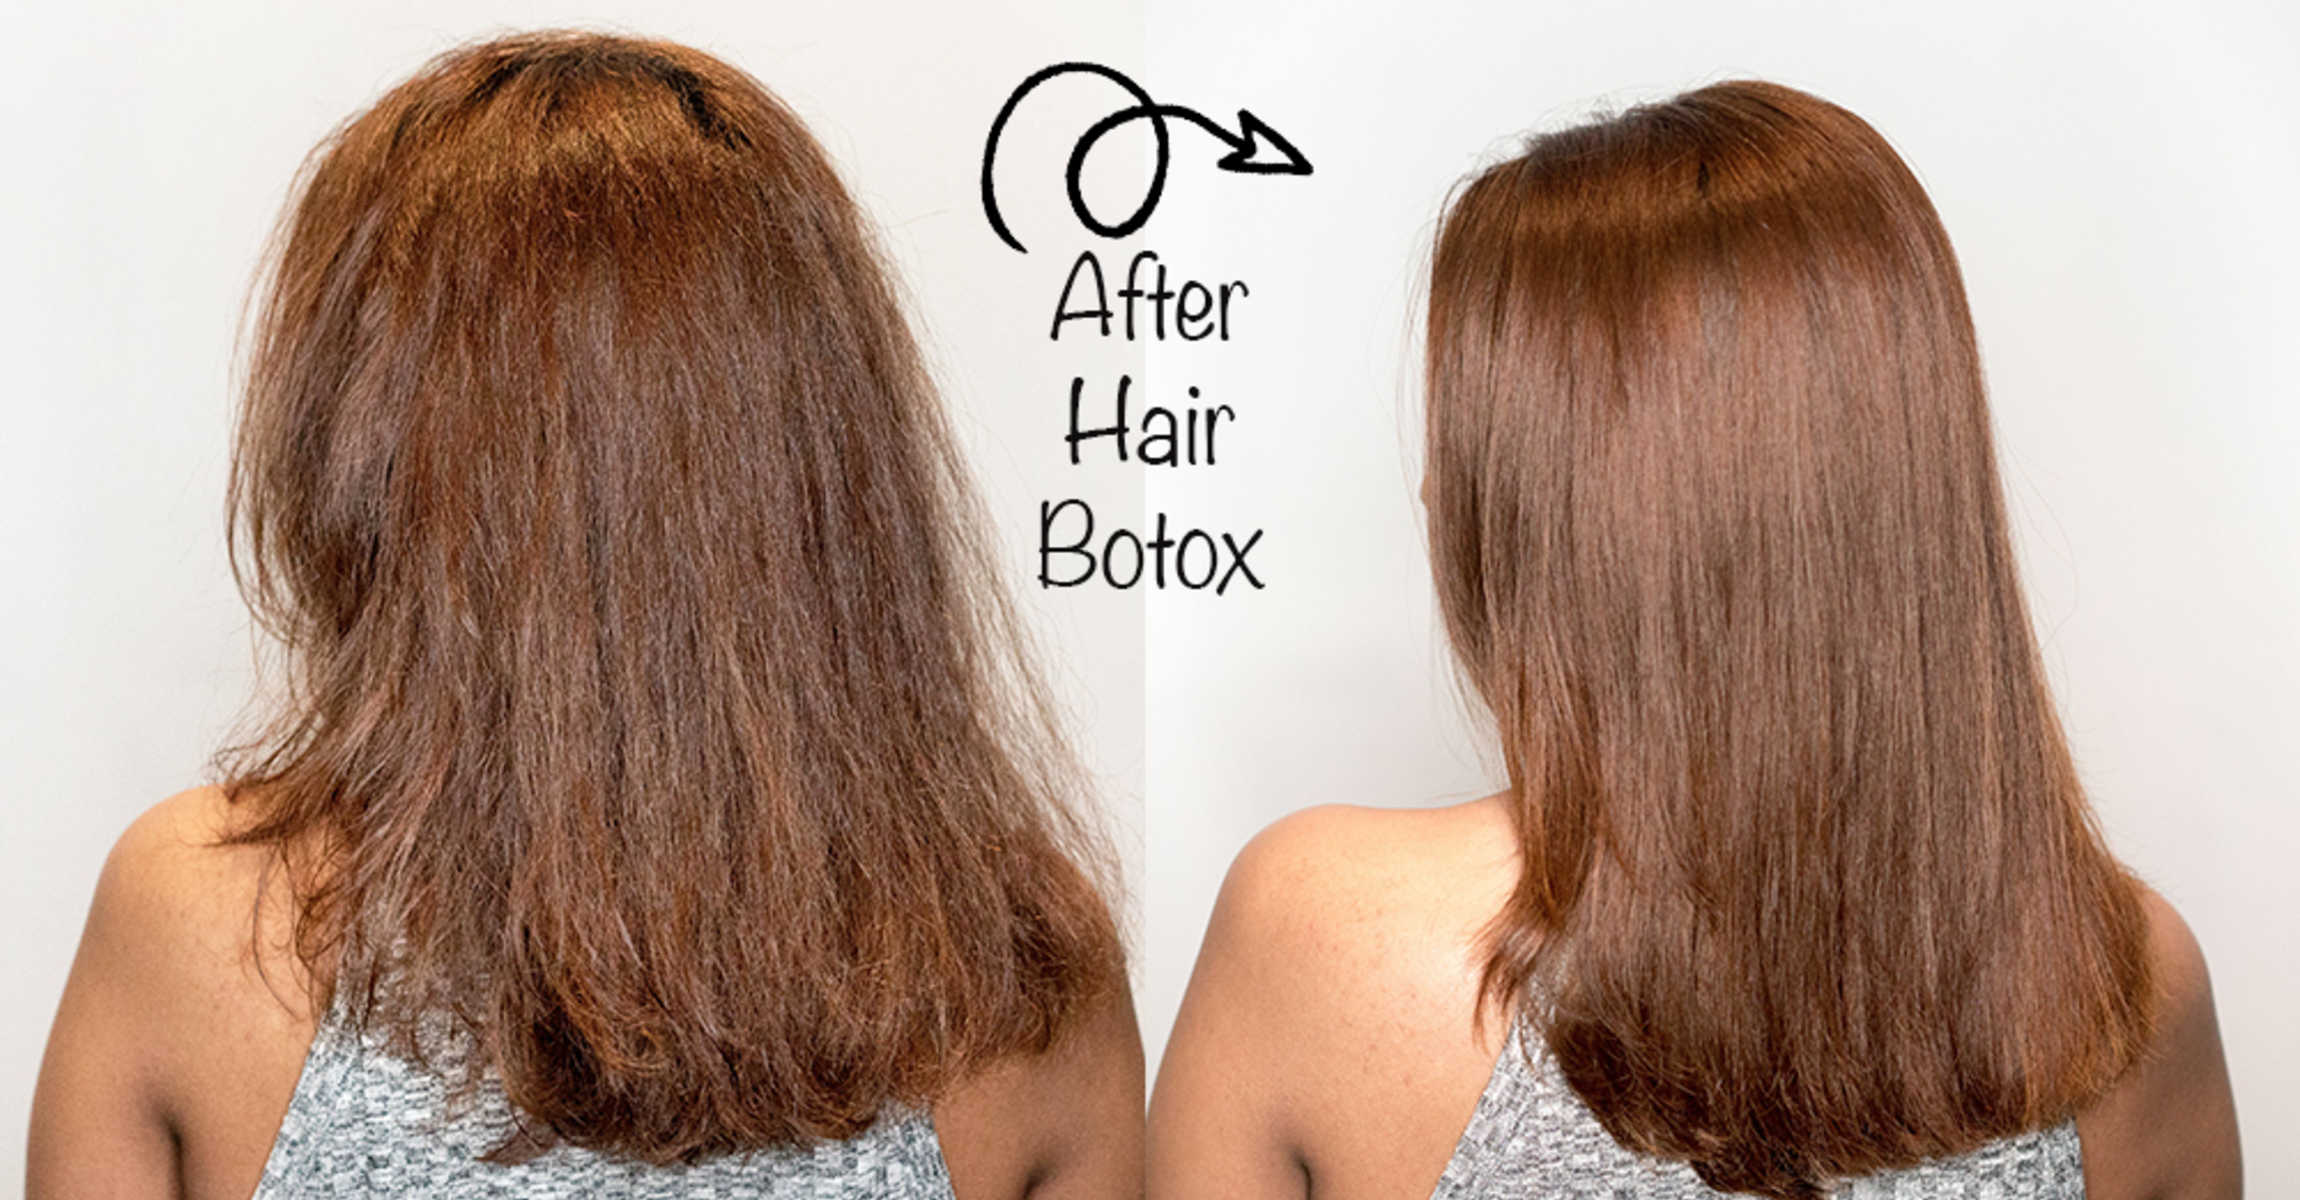 Hair Botox Can Revive Even the Most Damaged Hair